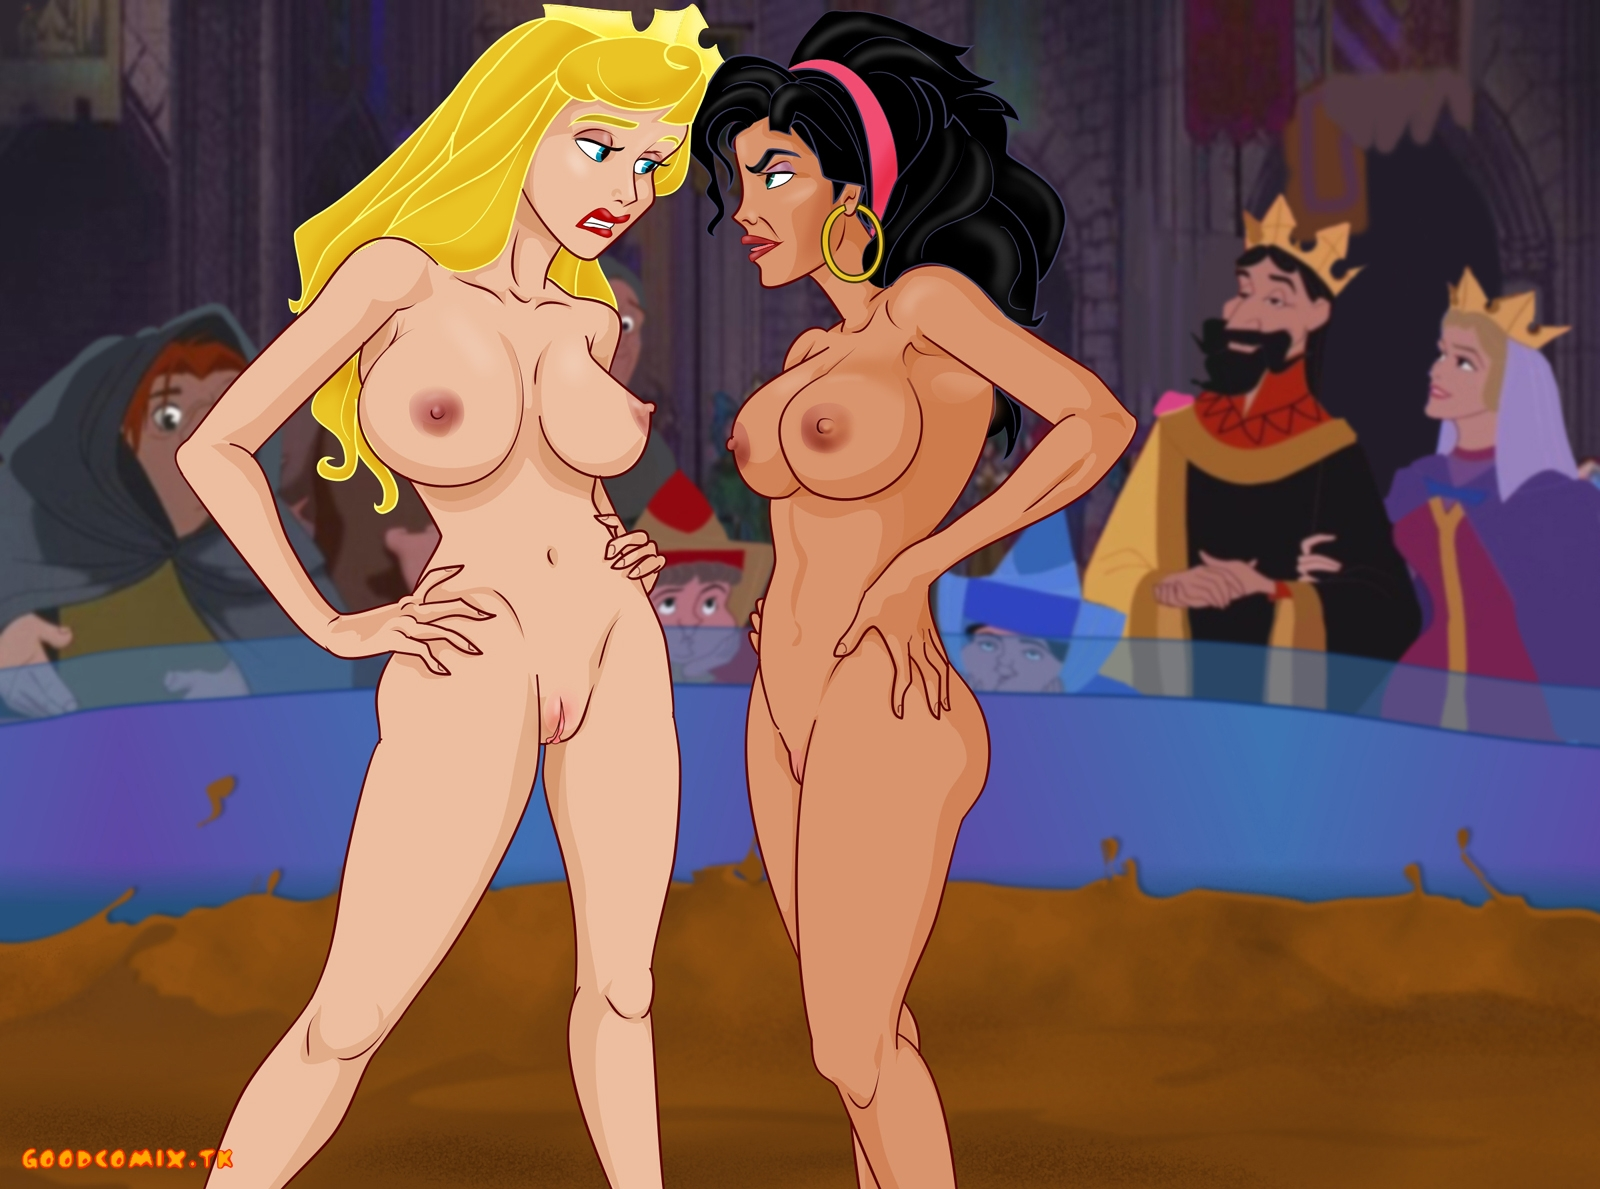 Goodcomix.tk The Hunchback of Notre-Dame - Sleeping Beauty - [XL-Toons] - Aurora VS Esmeralda xxx porno